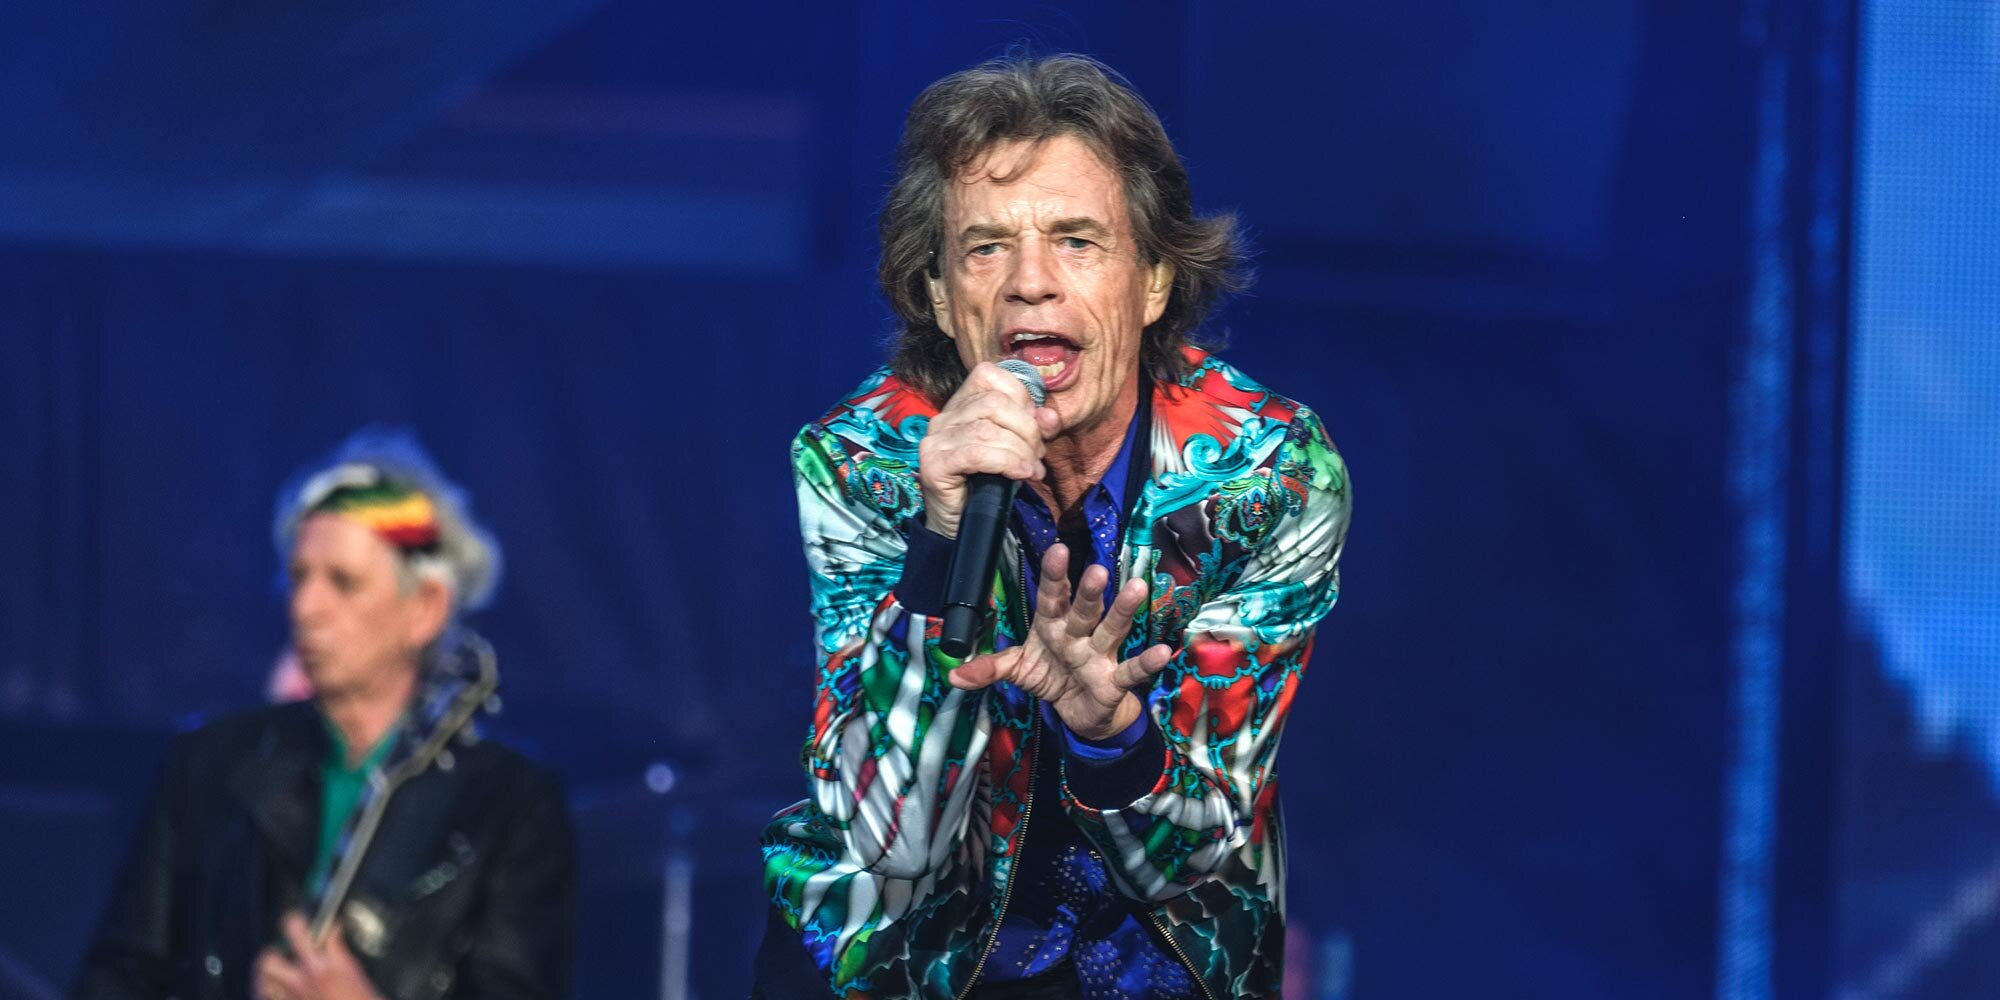 Mick Jagger admits he'll probably never finish his memoir: 'I didn't enjoy reliving my life'